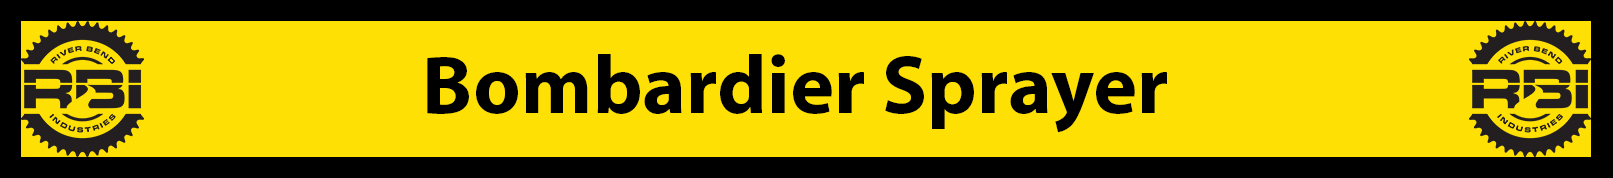 bombardier-sprayer-banner-icon.png